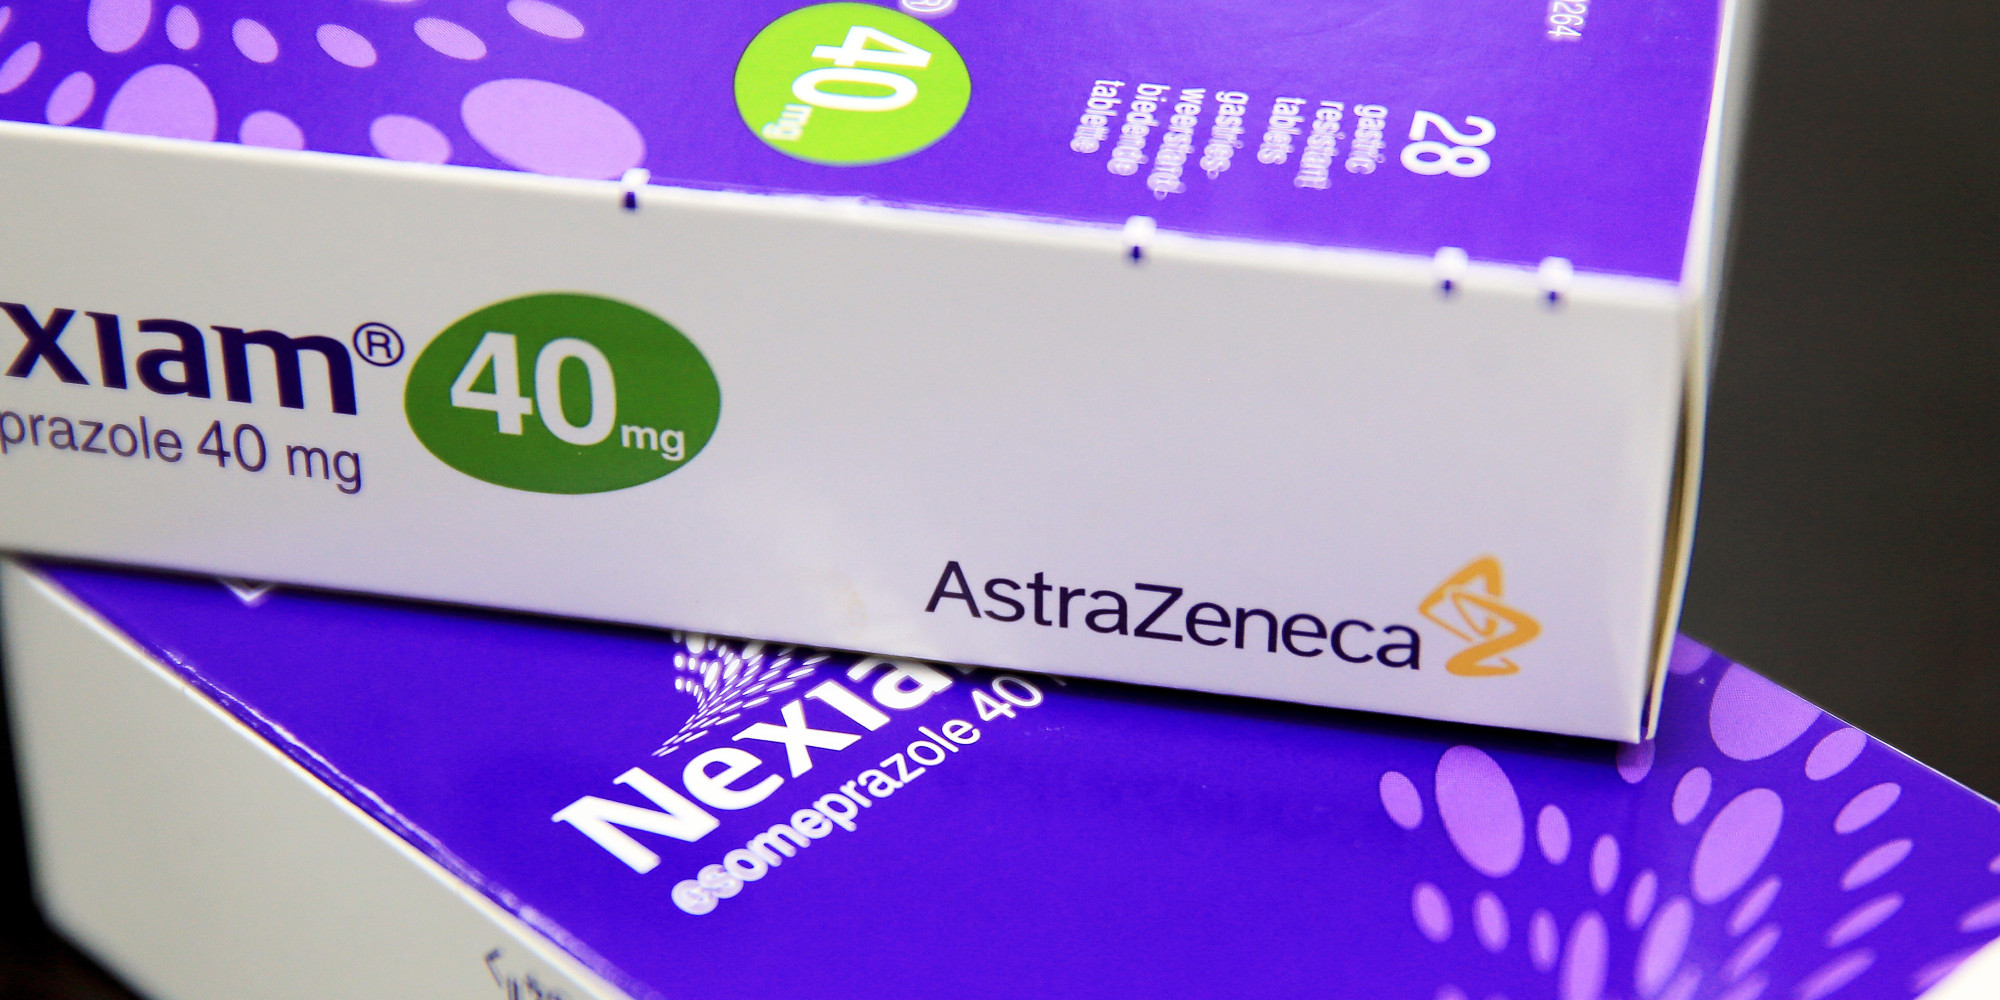 AstraZeneca and Acerta